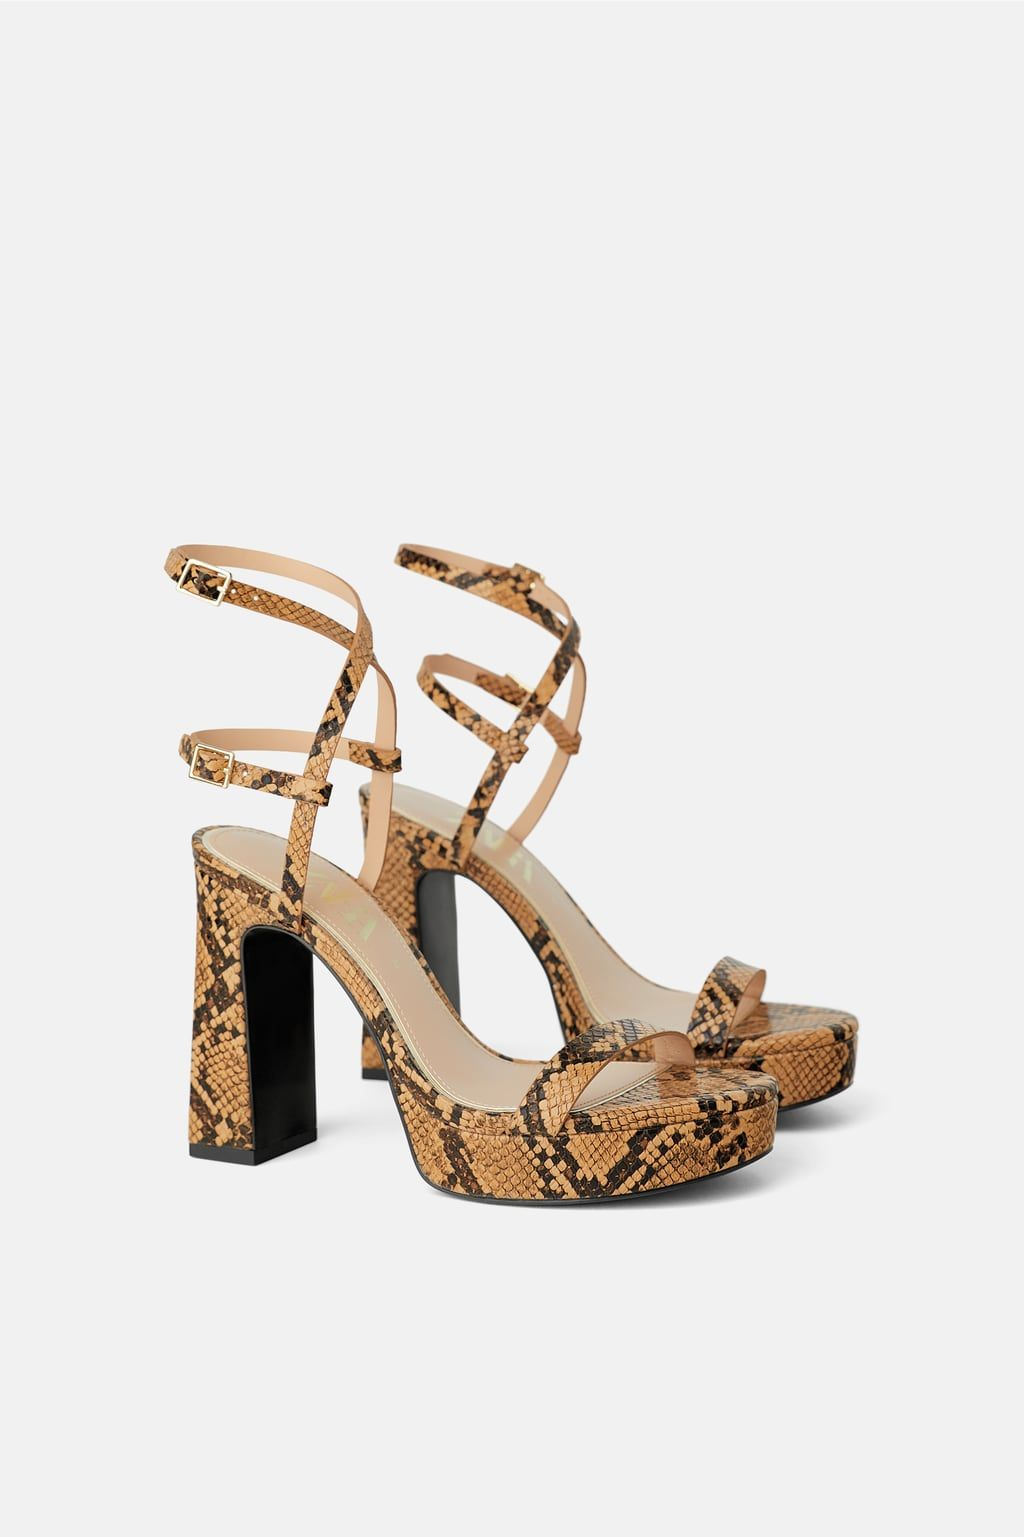 6d8dfdcf6e ANIMAL PRINT HIGH HEELED PLATFORM SANDALS - View all-WOMAN-SHOES | ZARA  United States